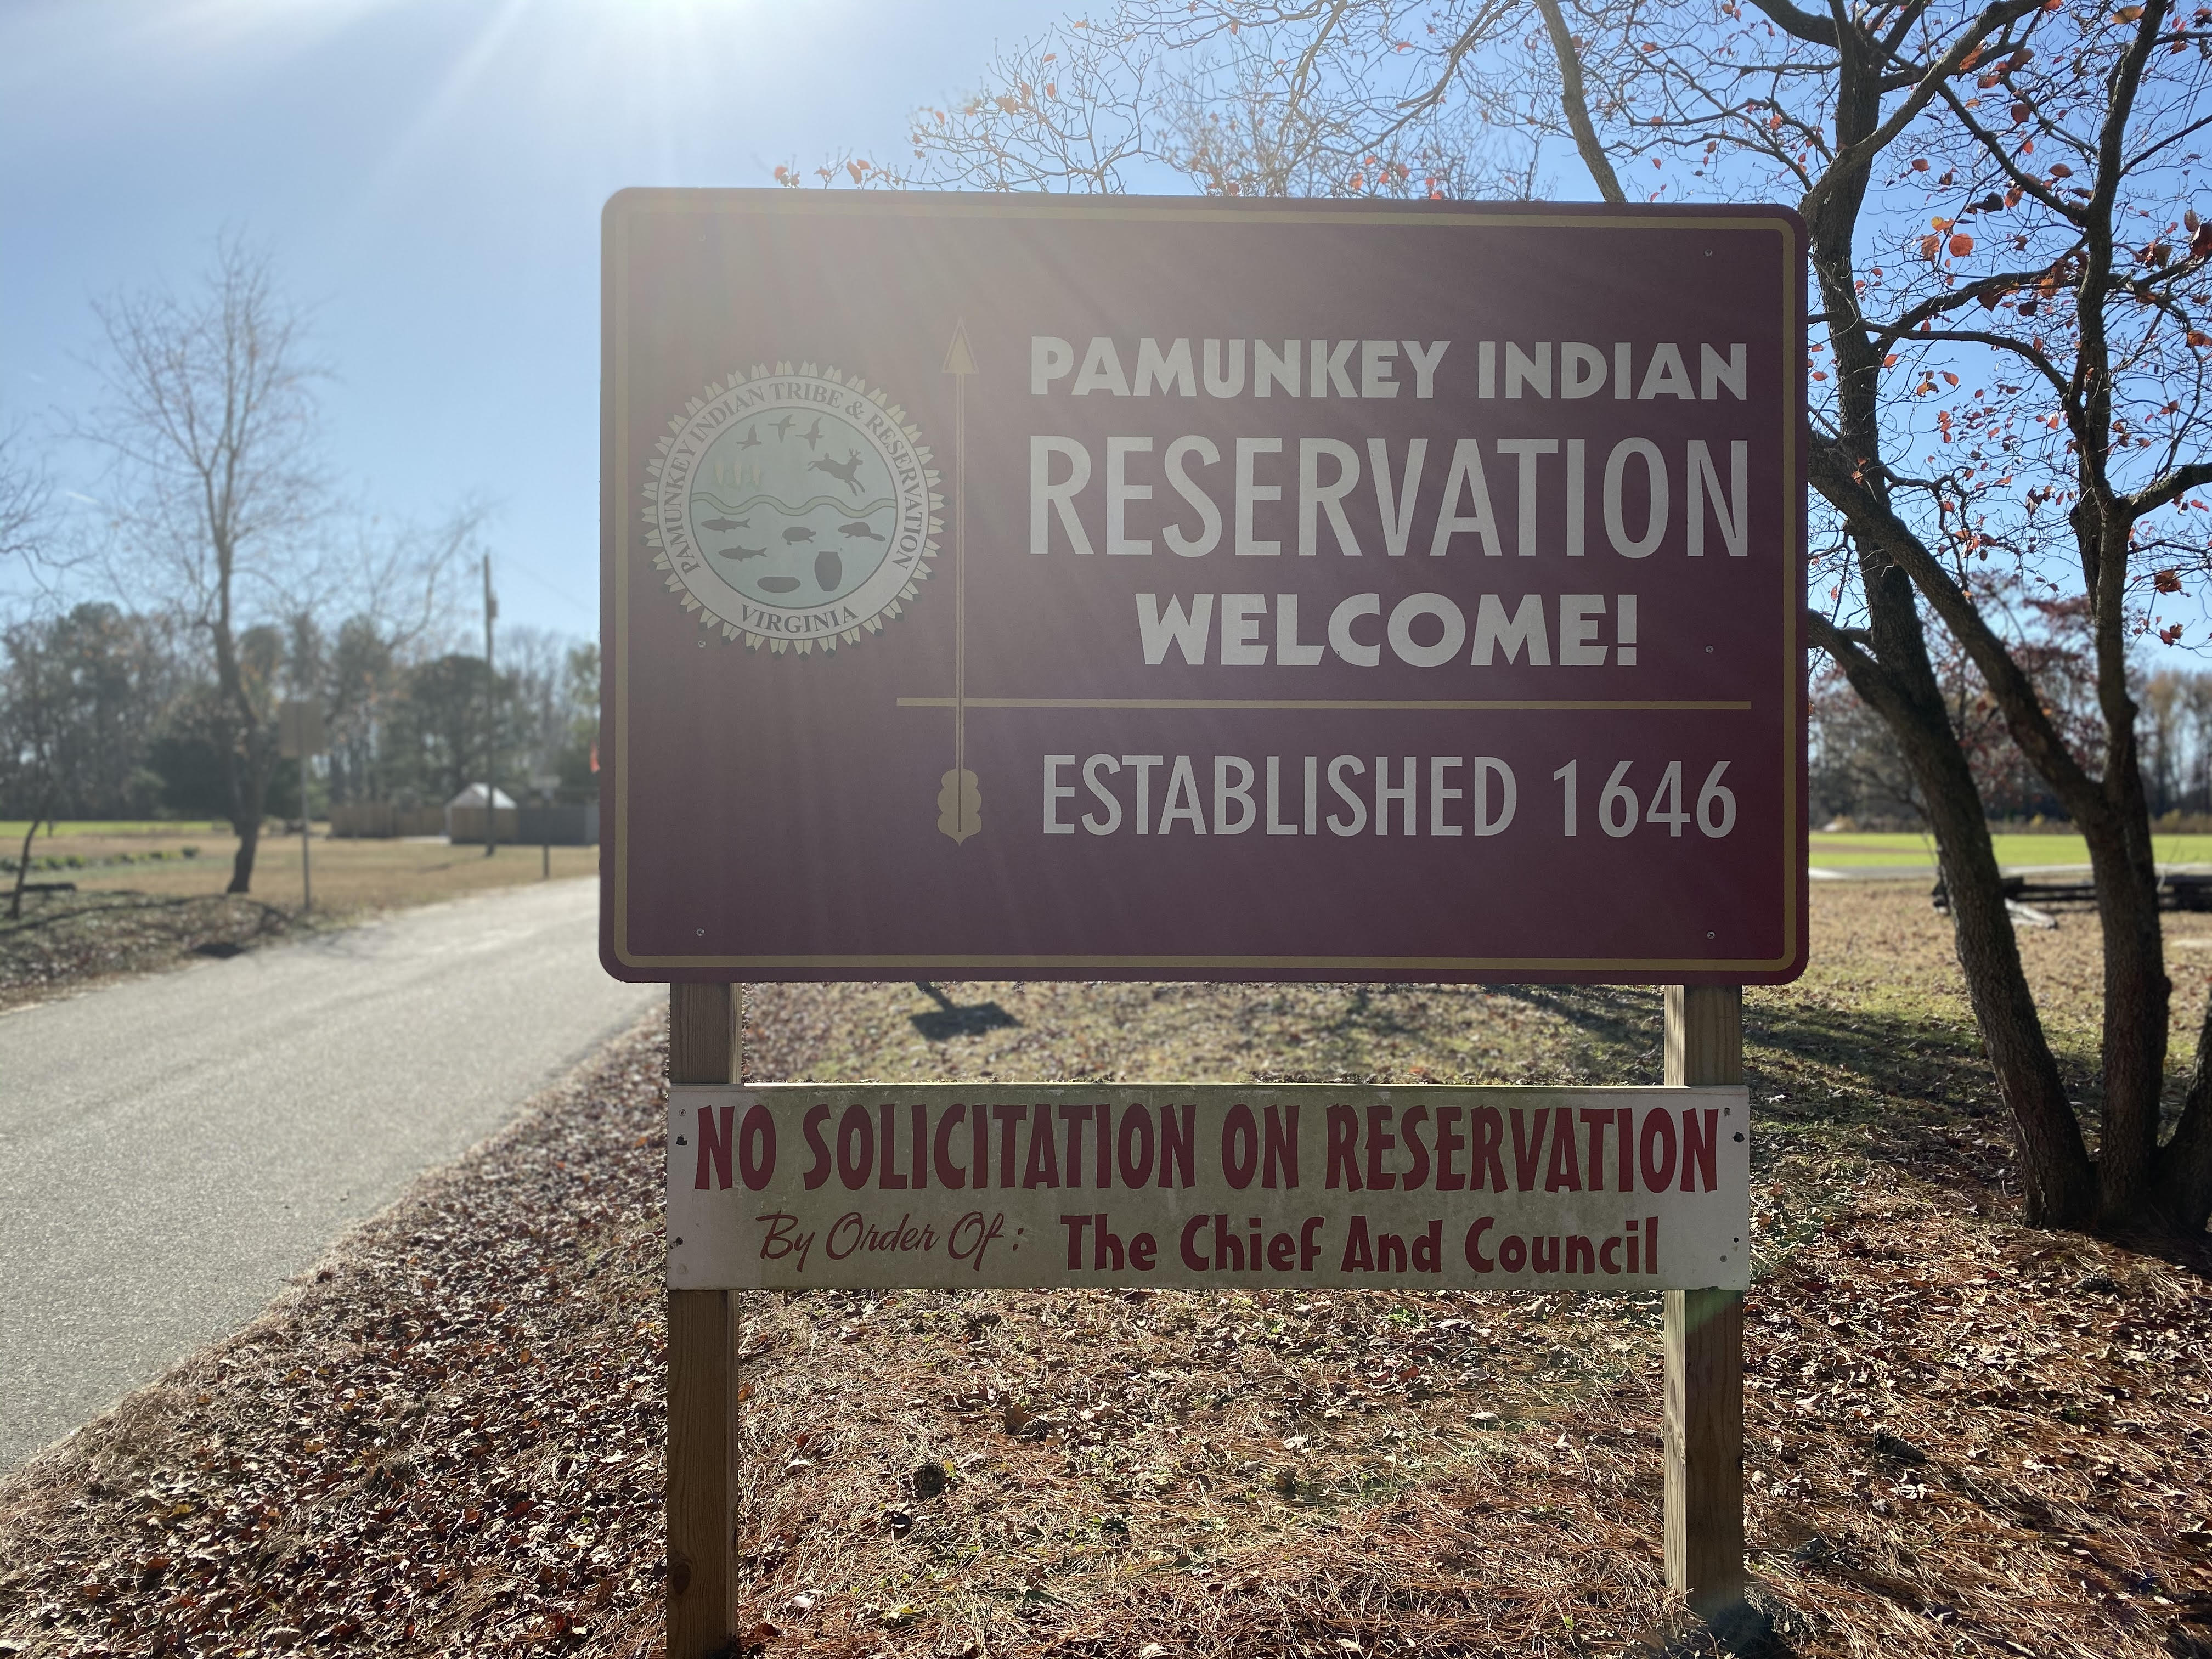 Pamunkey Indian Reservation sign